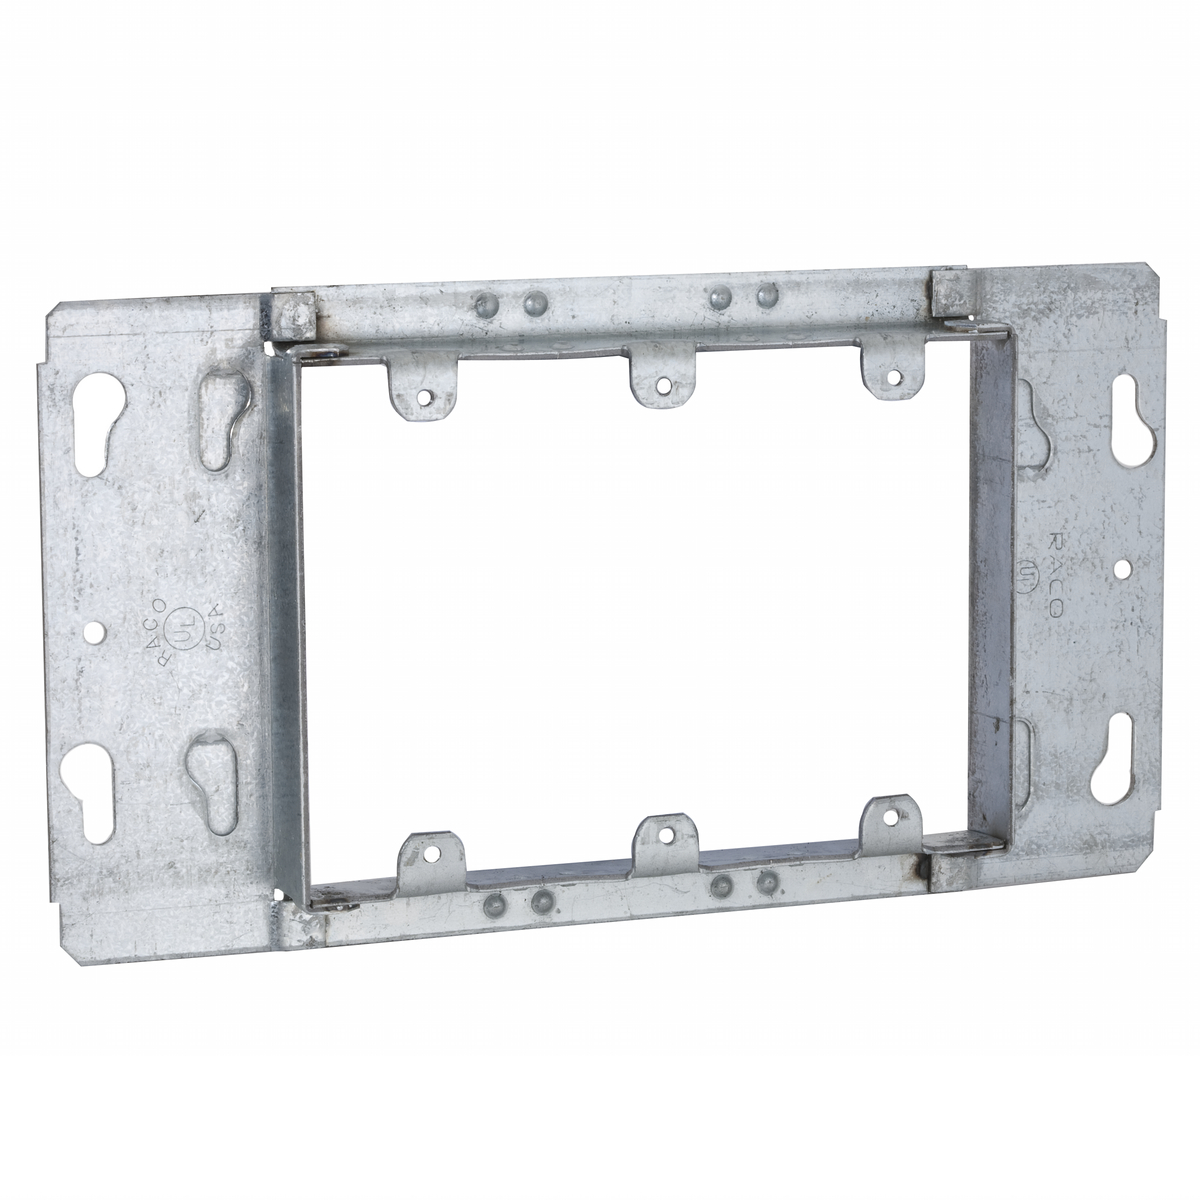 Hubbell-Raco 822 Device Cover